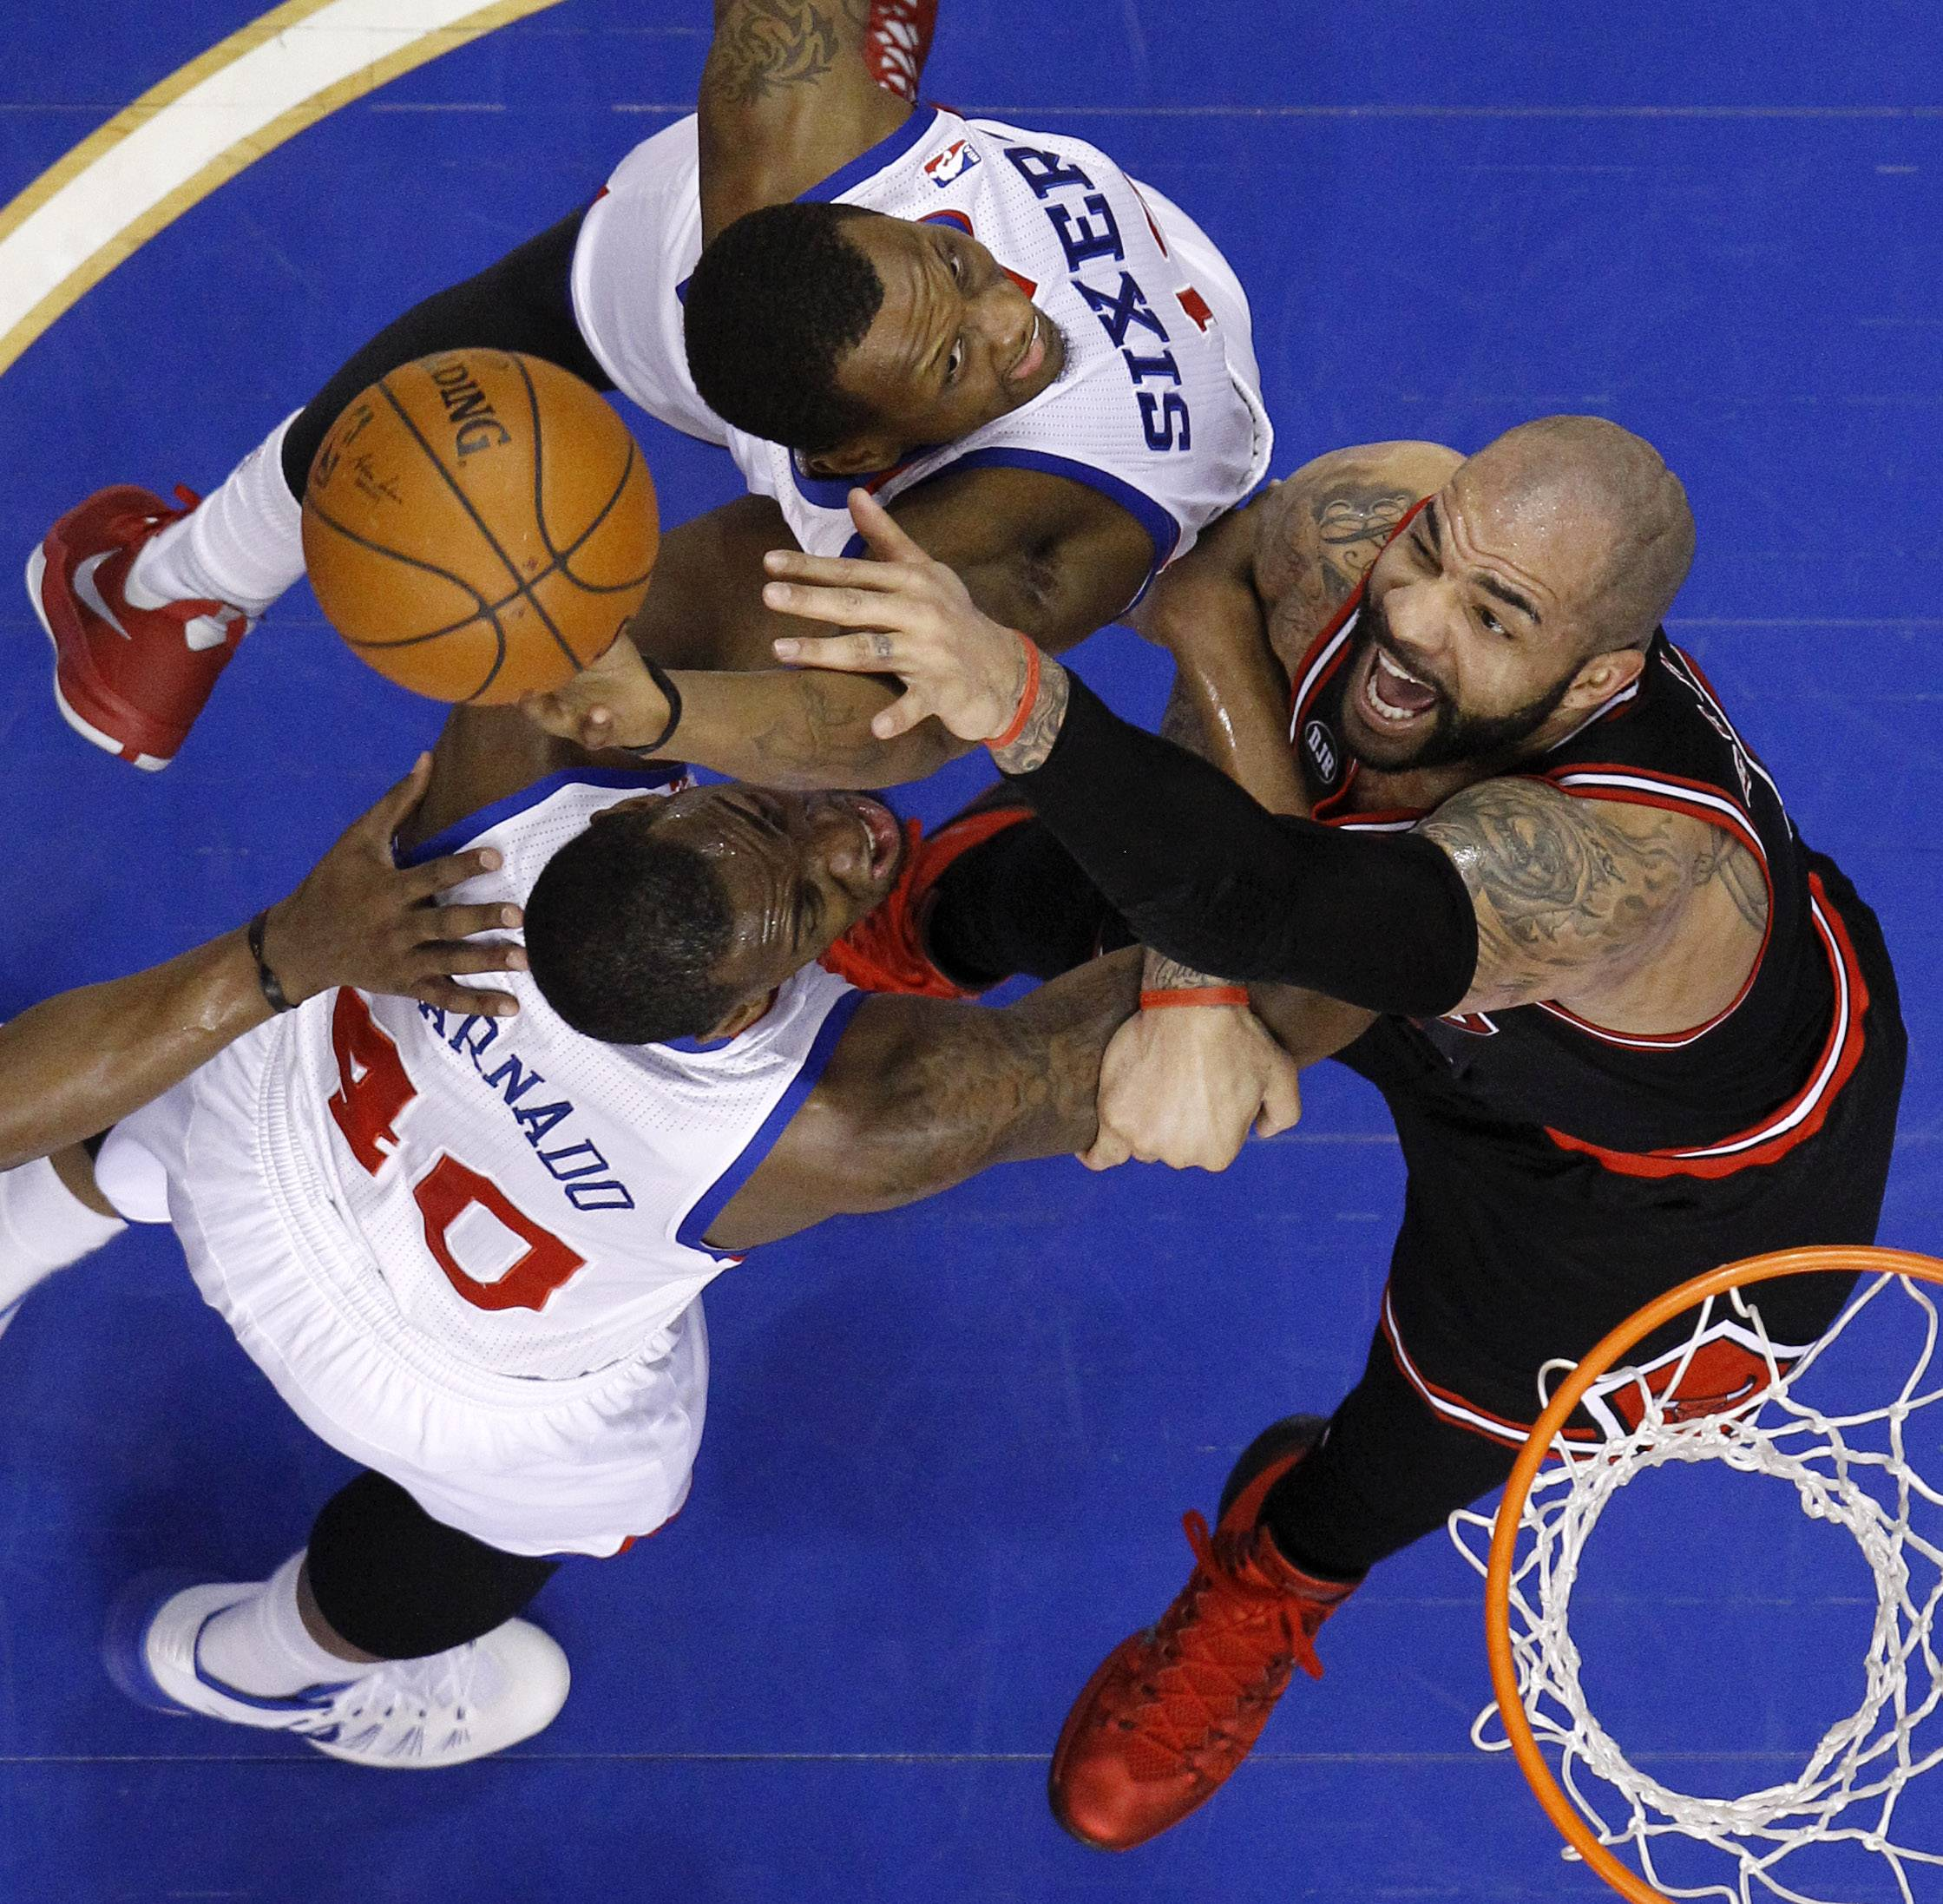 The Bulls' Carlos Boozer, right, battles for a rebound with the 76ers' James Nunnally, center, and Jarvis Varnado during Wednesday night's road game. The Bulls handed Philadelphia its 22nd straight loss.